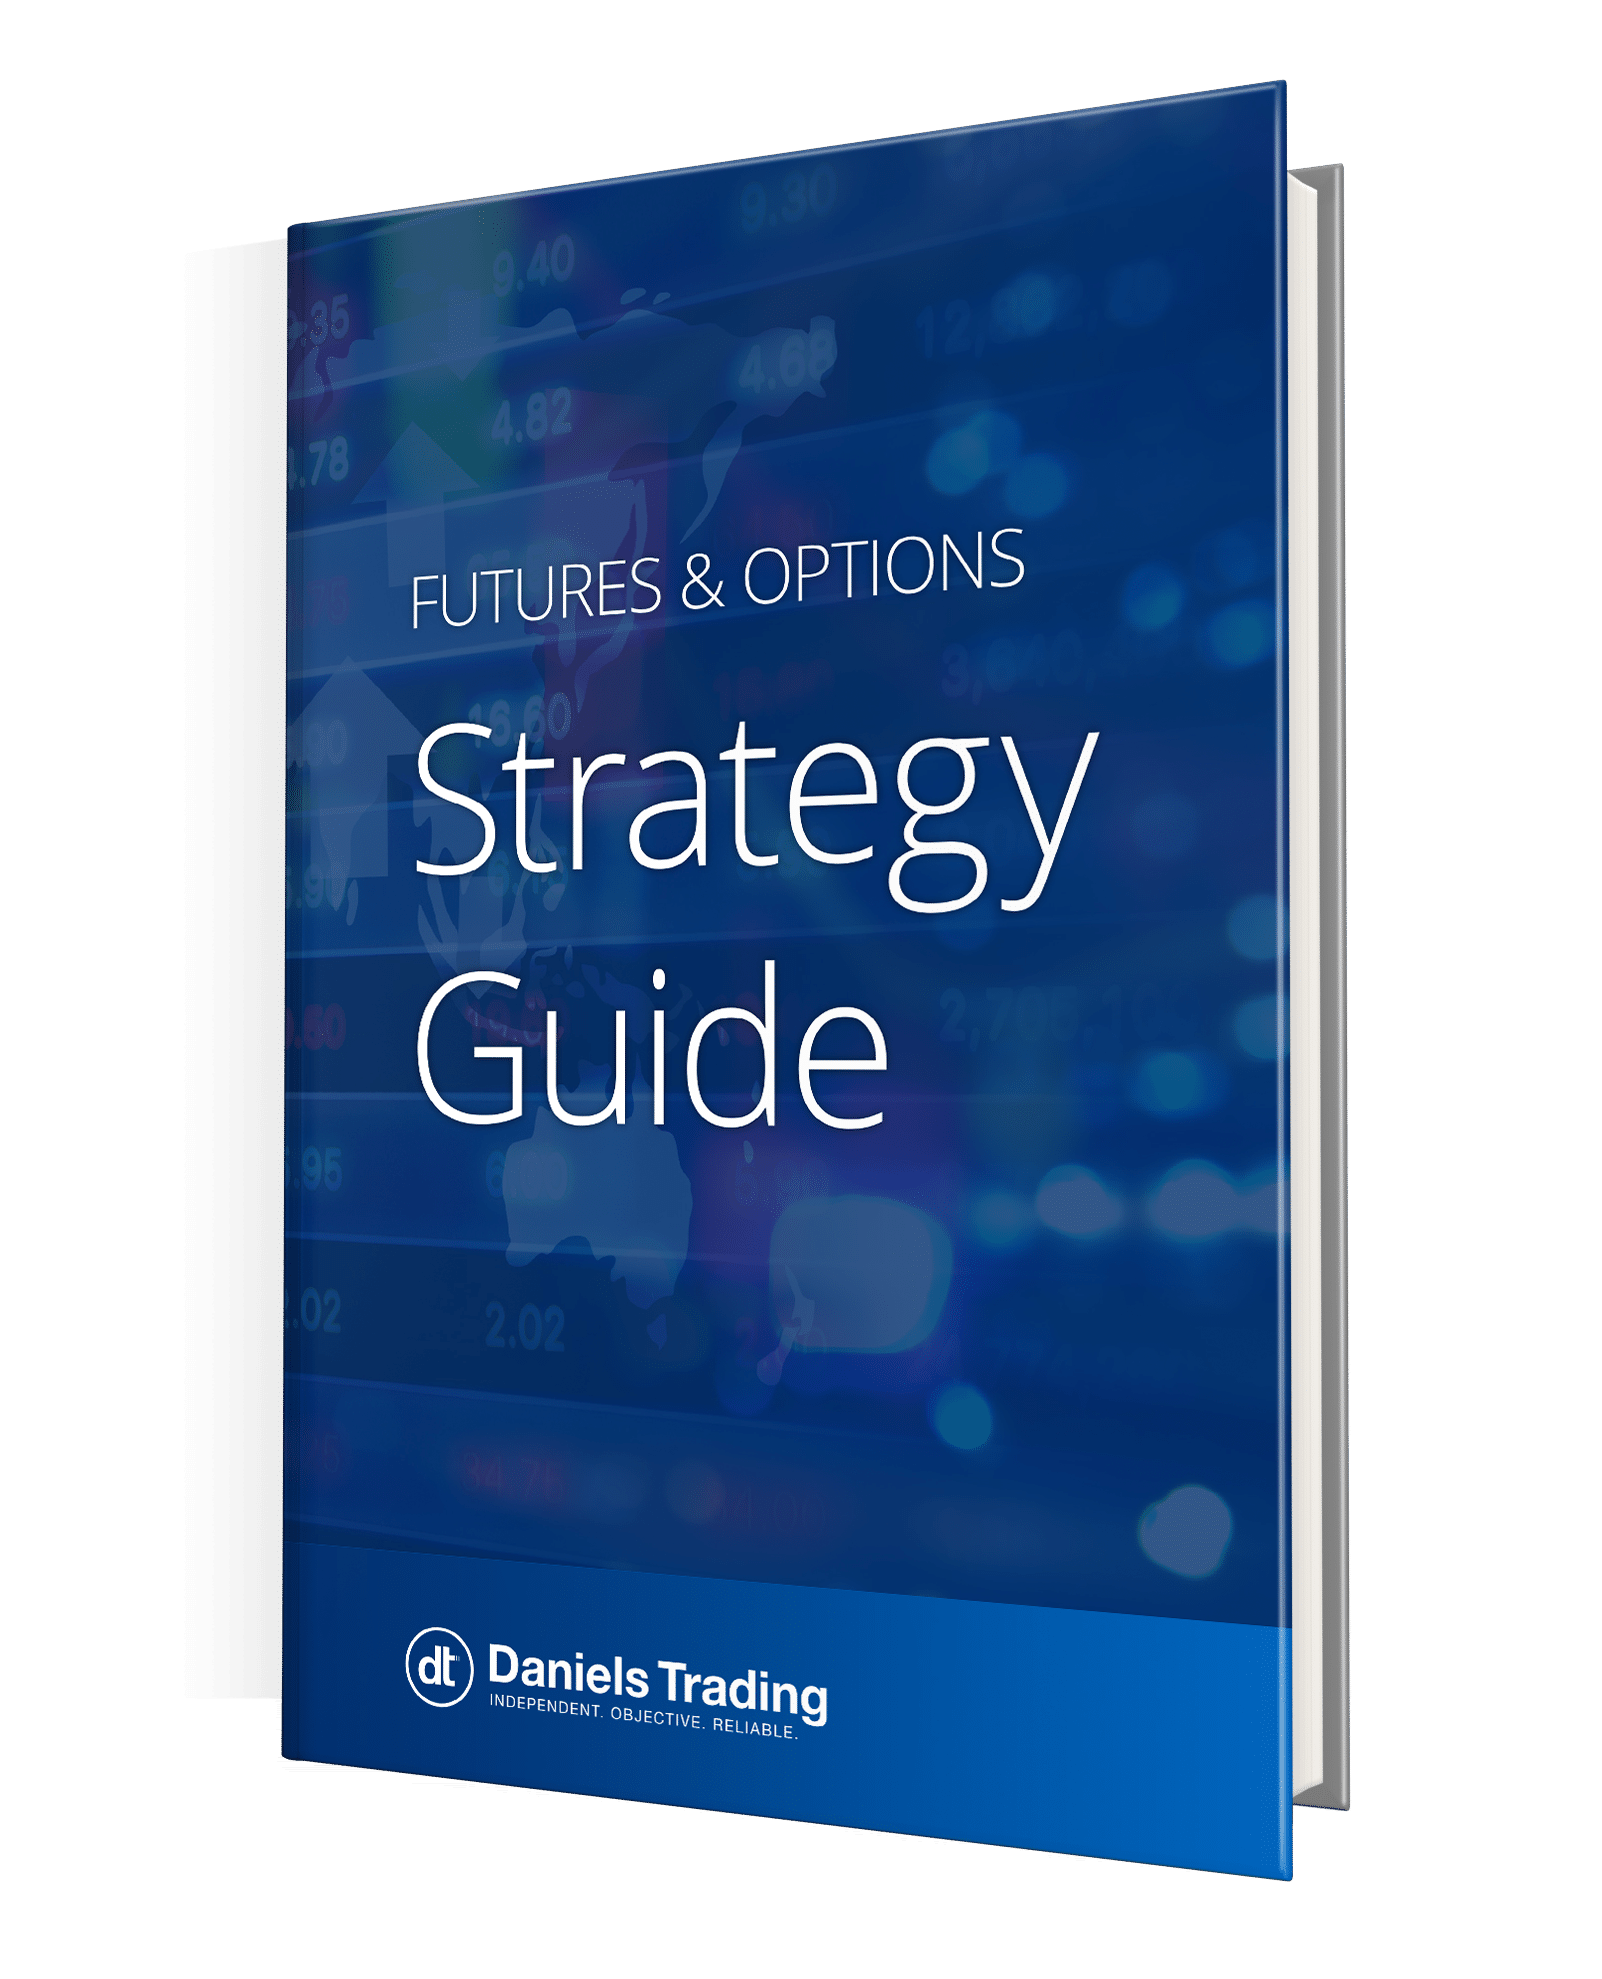 All about future and option trading